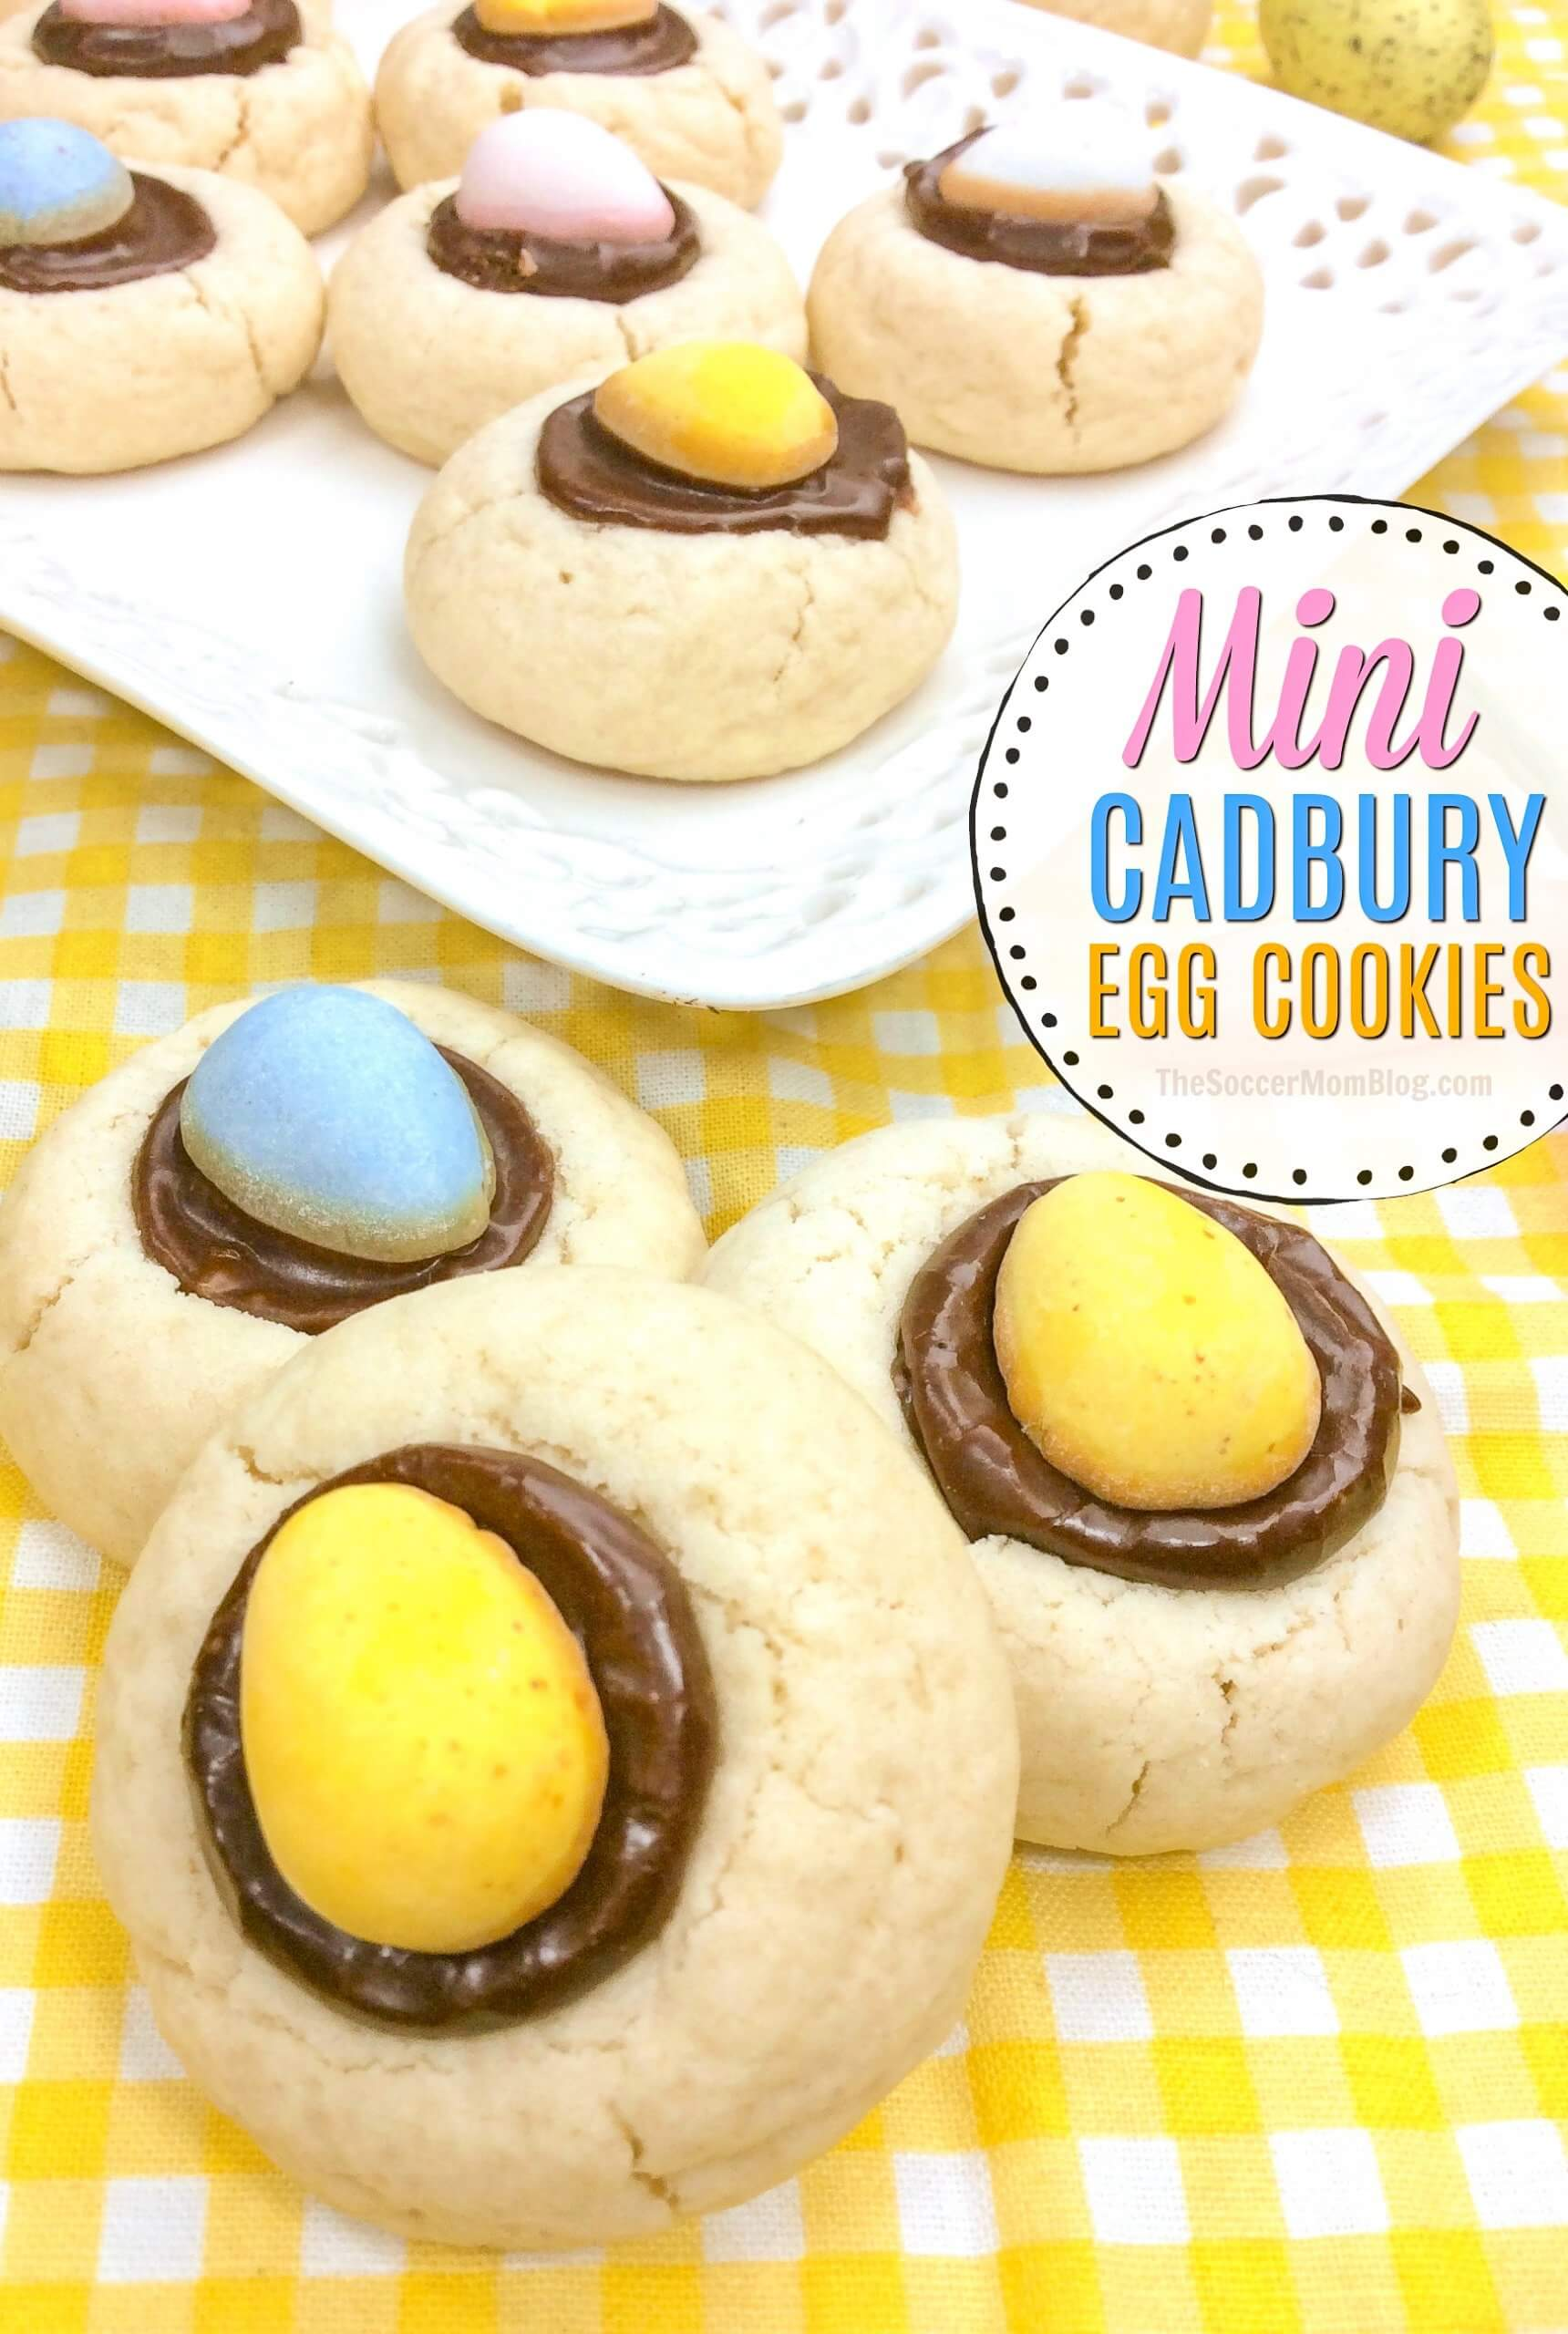 Festive and delicious! If you love those crunchy and creamy Cadbury Mini Eggs, then you'll love our Cadbury Egg Cookies! A delicious thumbprint cookie filled with rich chocolate ganache and candy treat!